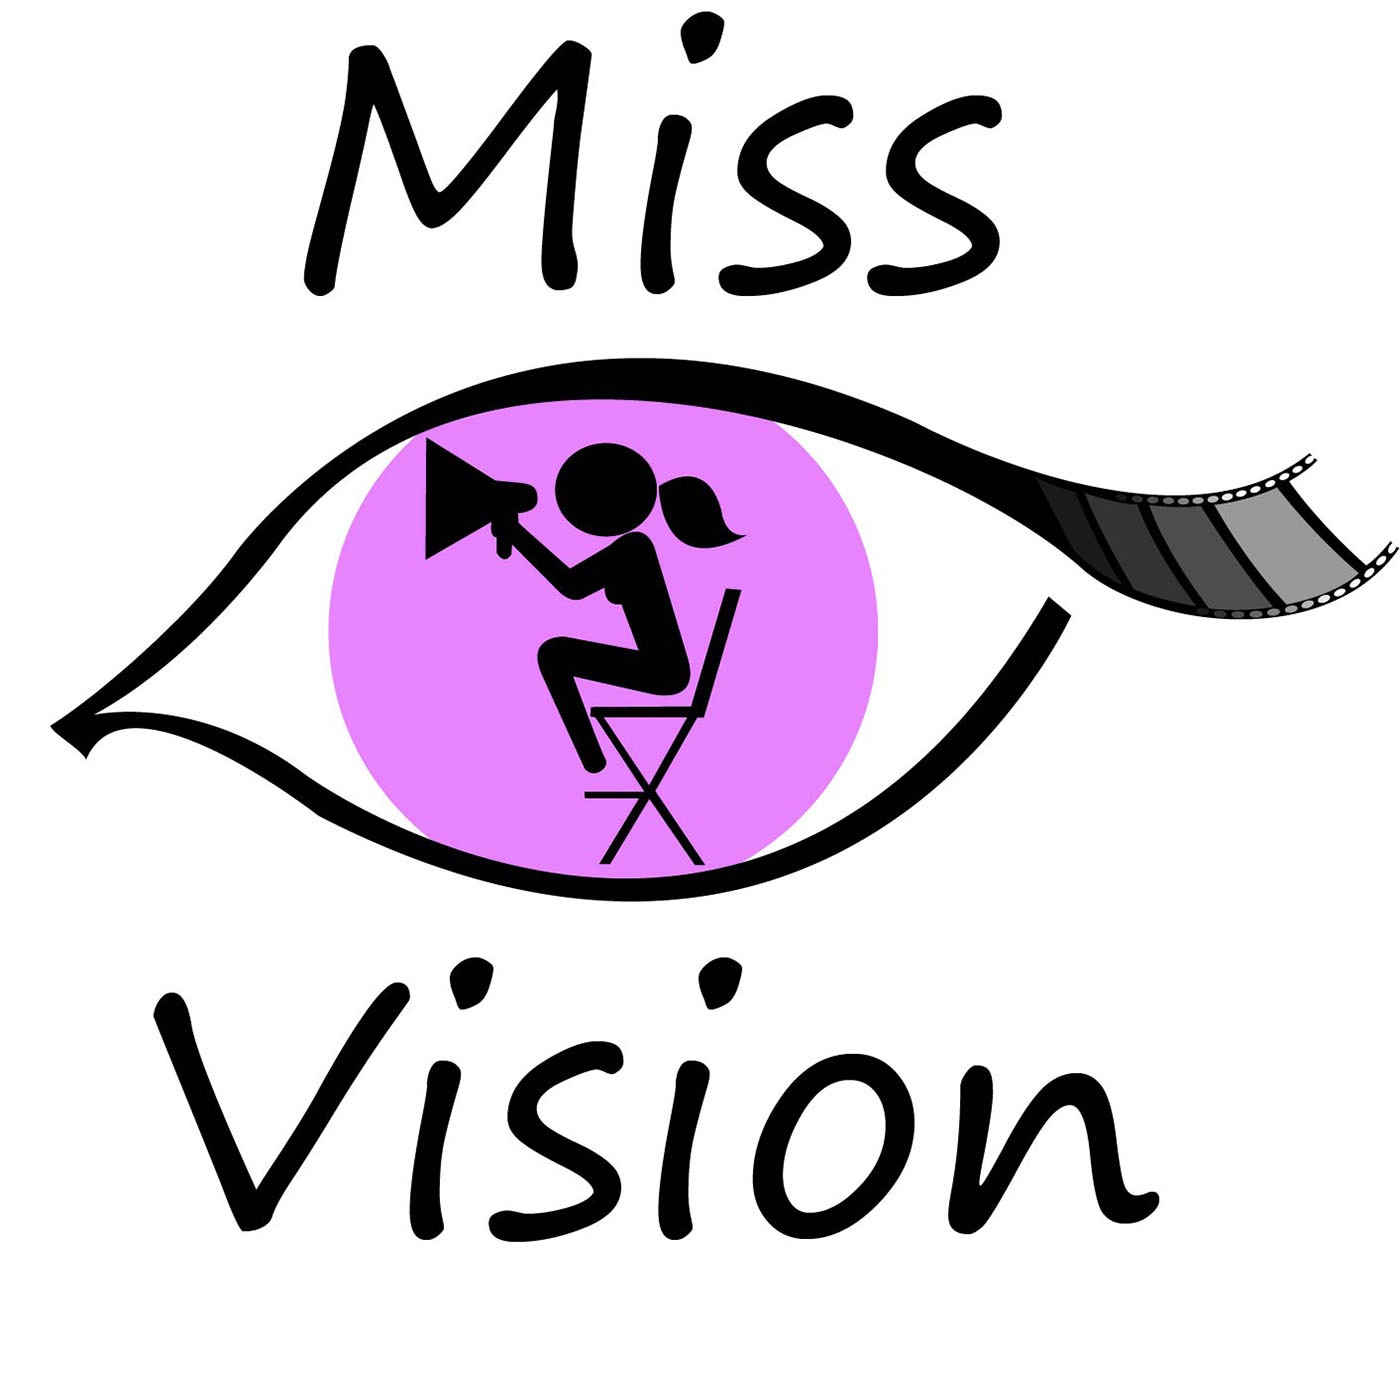 Miss Vision